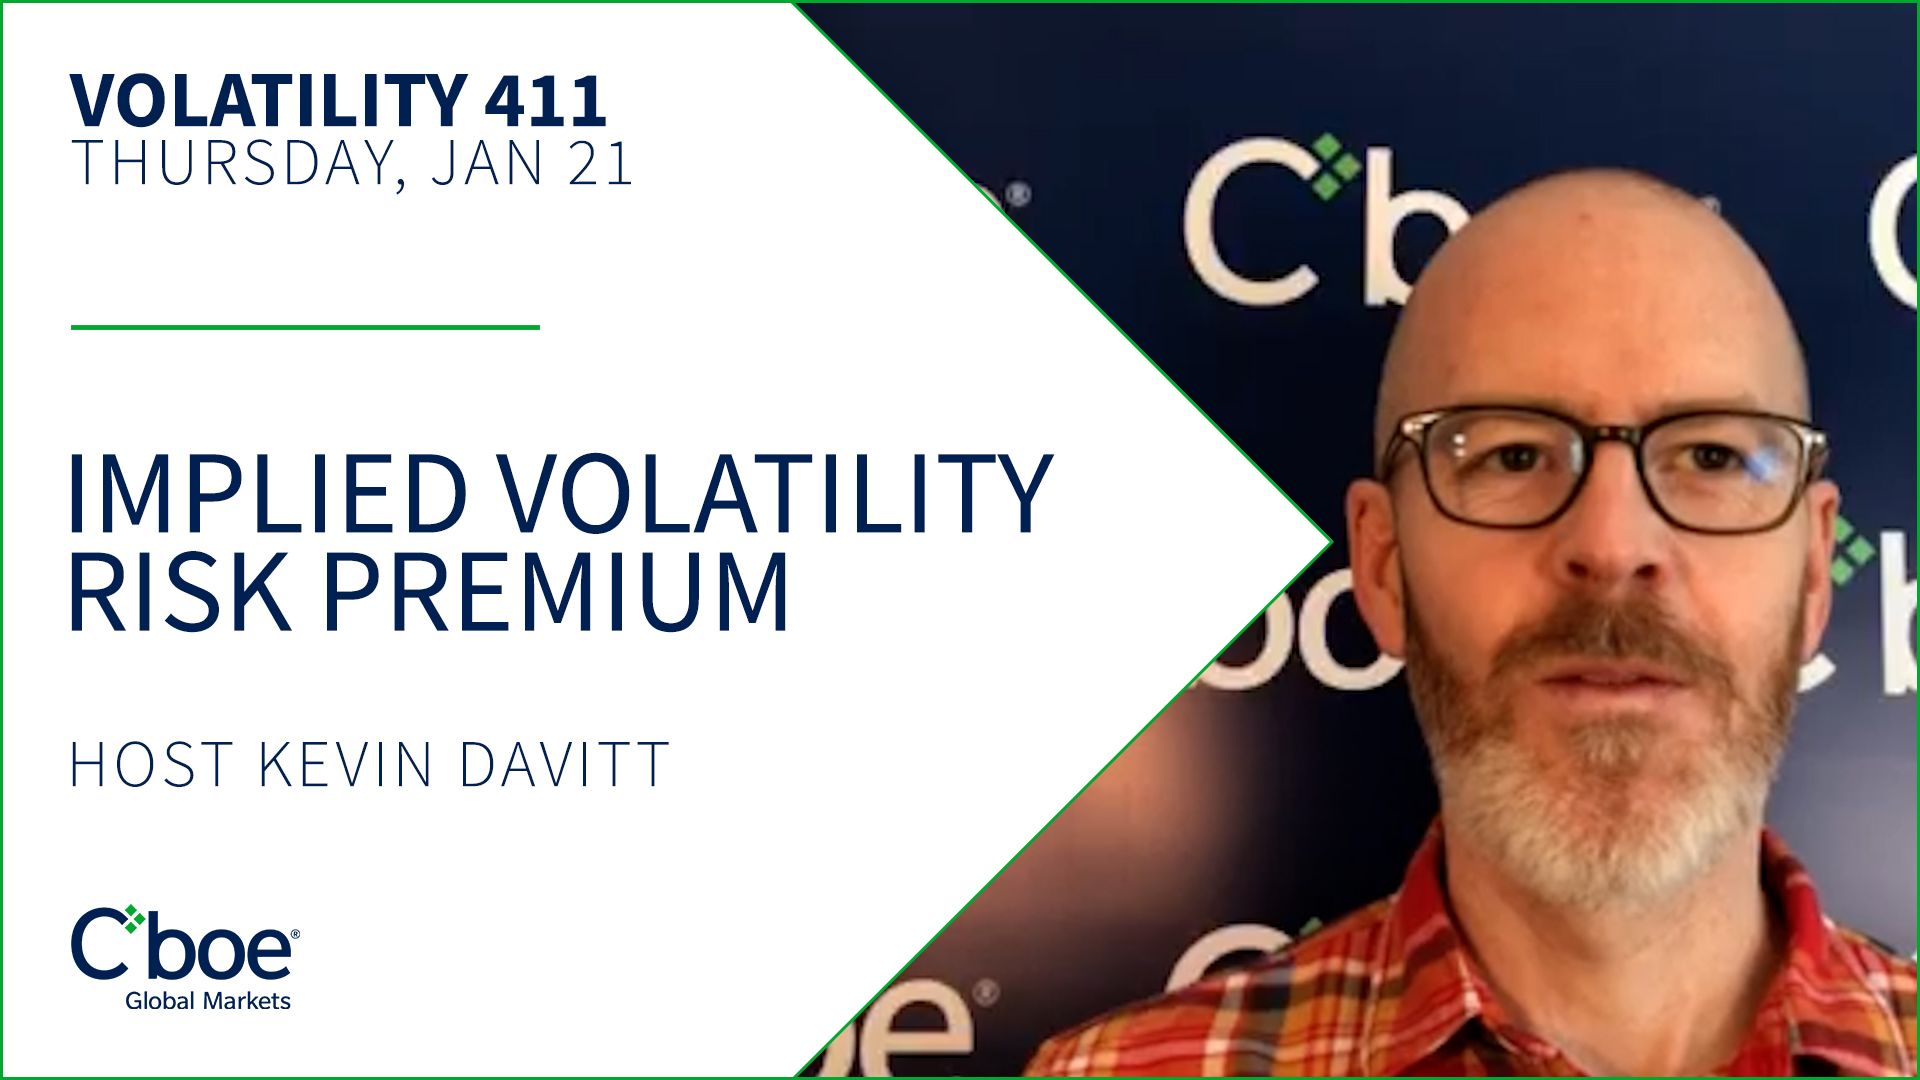 Implied Volatility Risk Premium Thumbnail